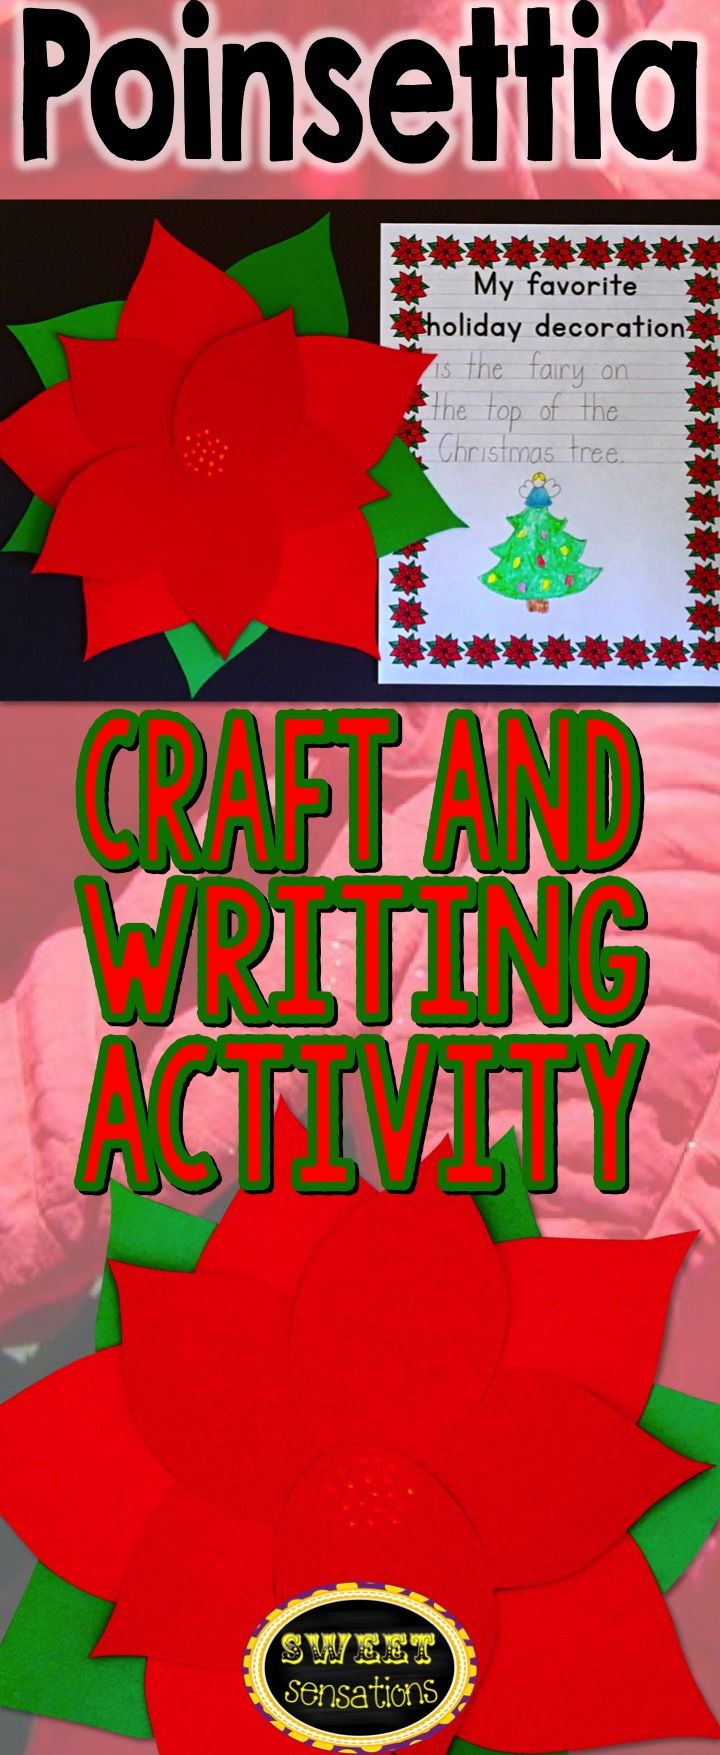 139 best images about first grade christmas on pinterest for Holidays around the world crafts